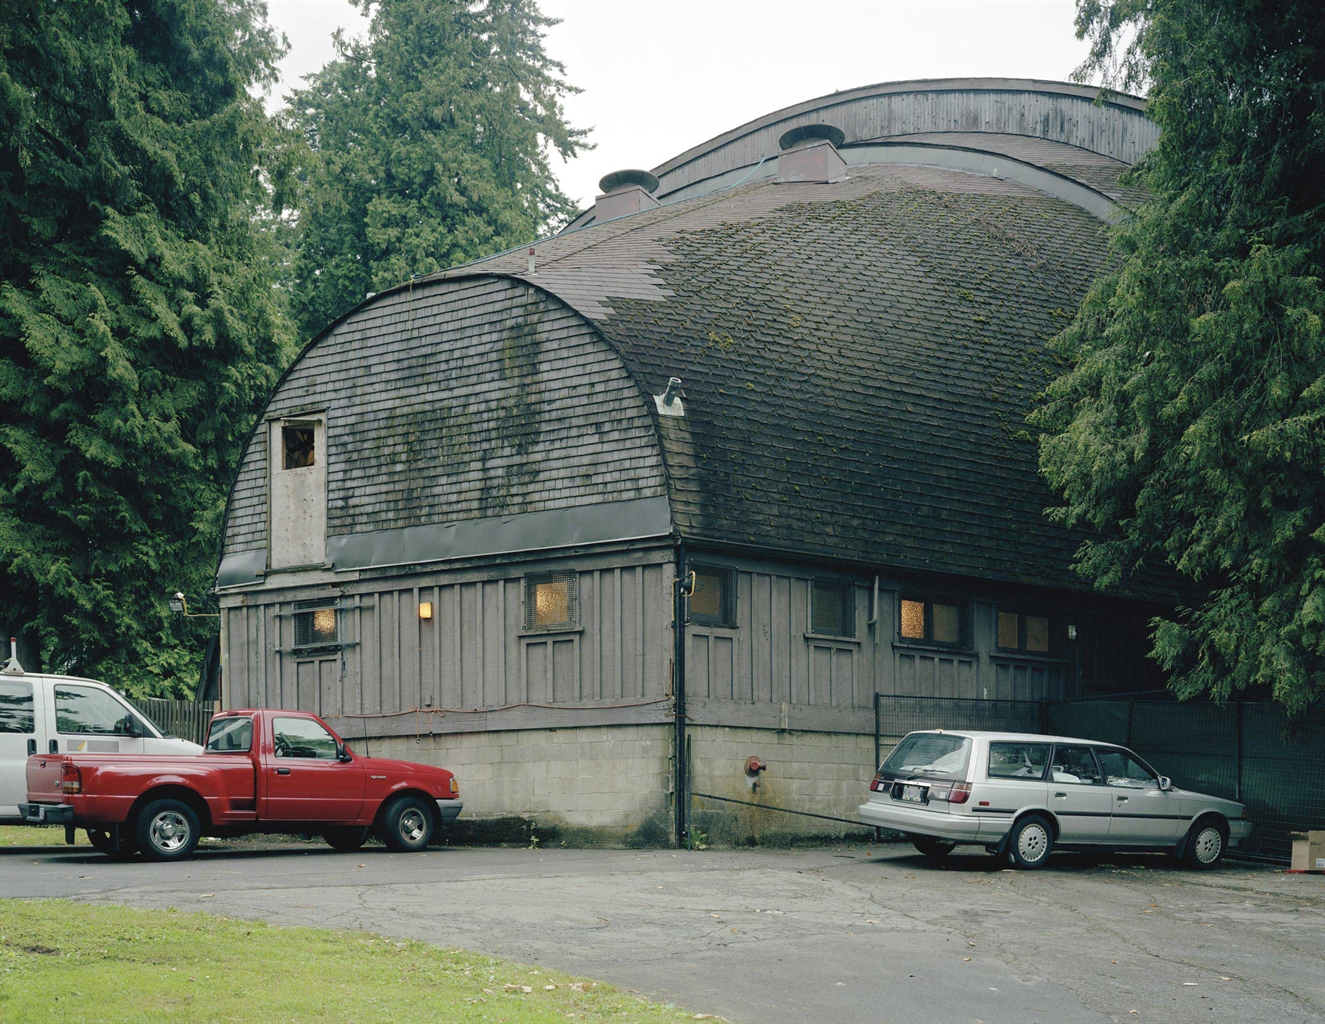 Jeff Wall-Rear view, open air theatre, Vancouver-2005